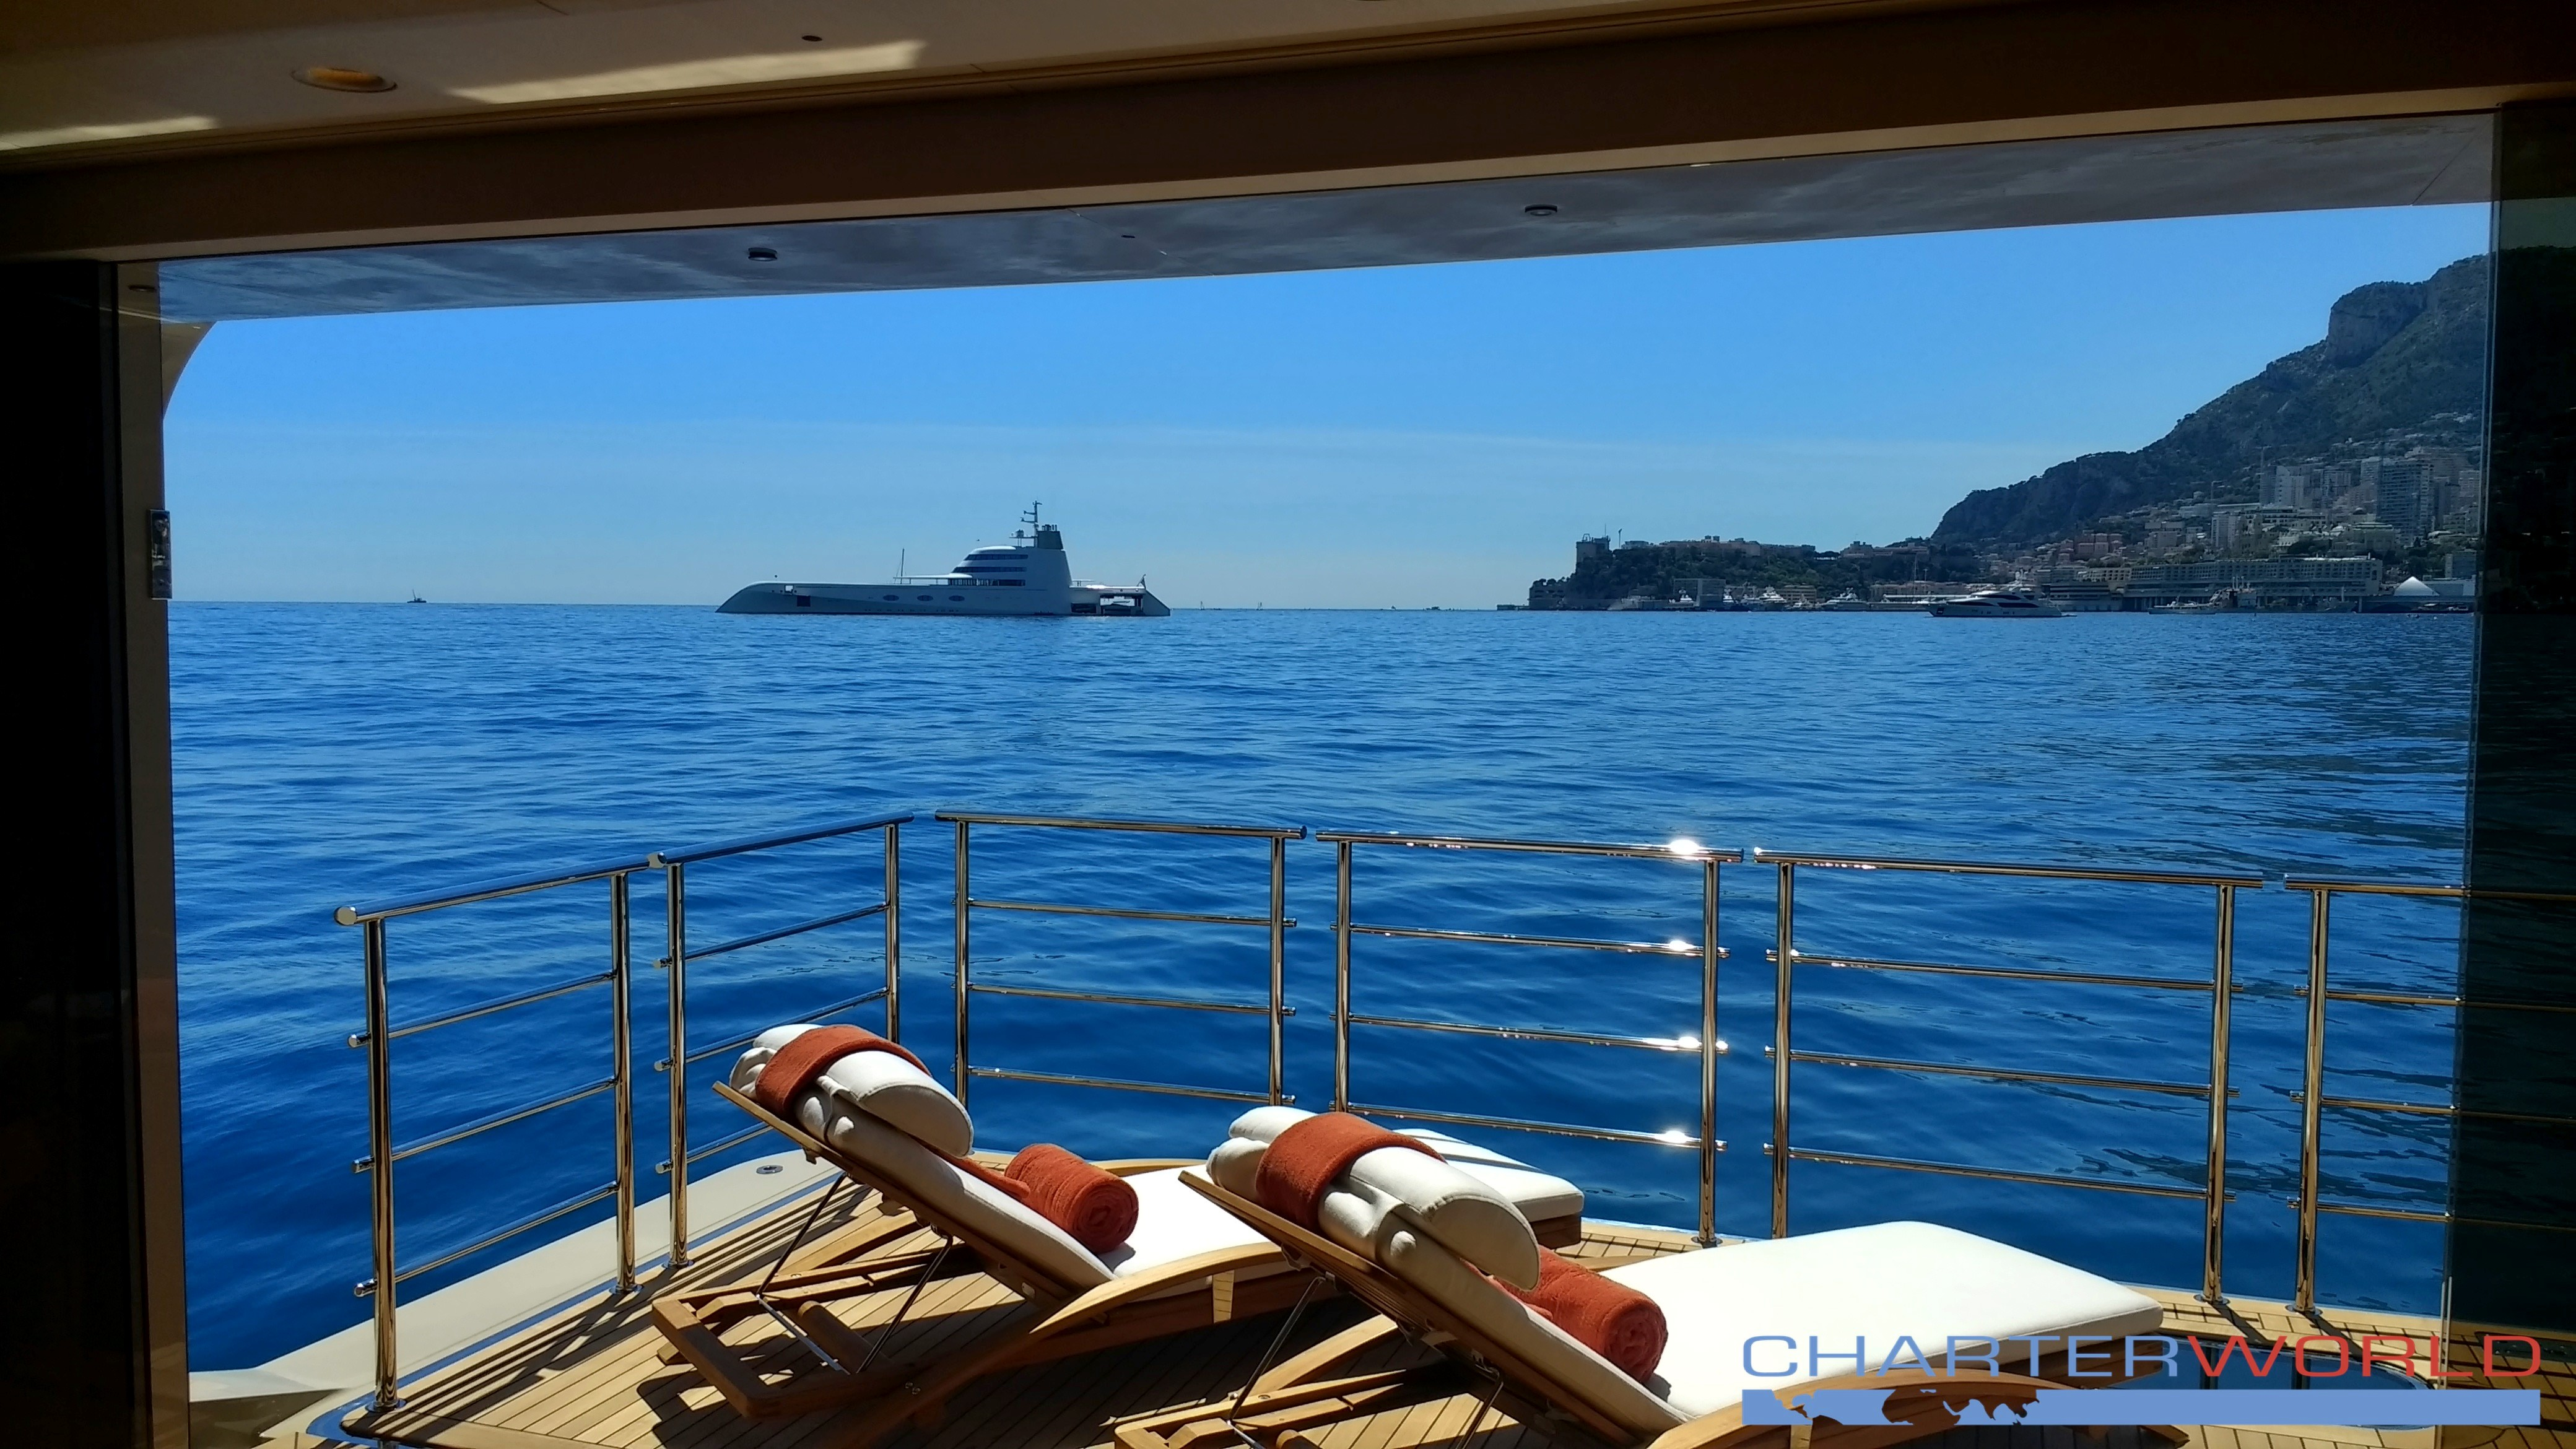 Motor Yacht A In Monaco As Viewed From Balcony Of Amels 272 Yacht Here Comes The Sun